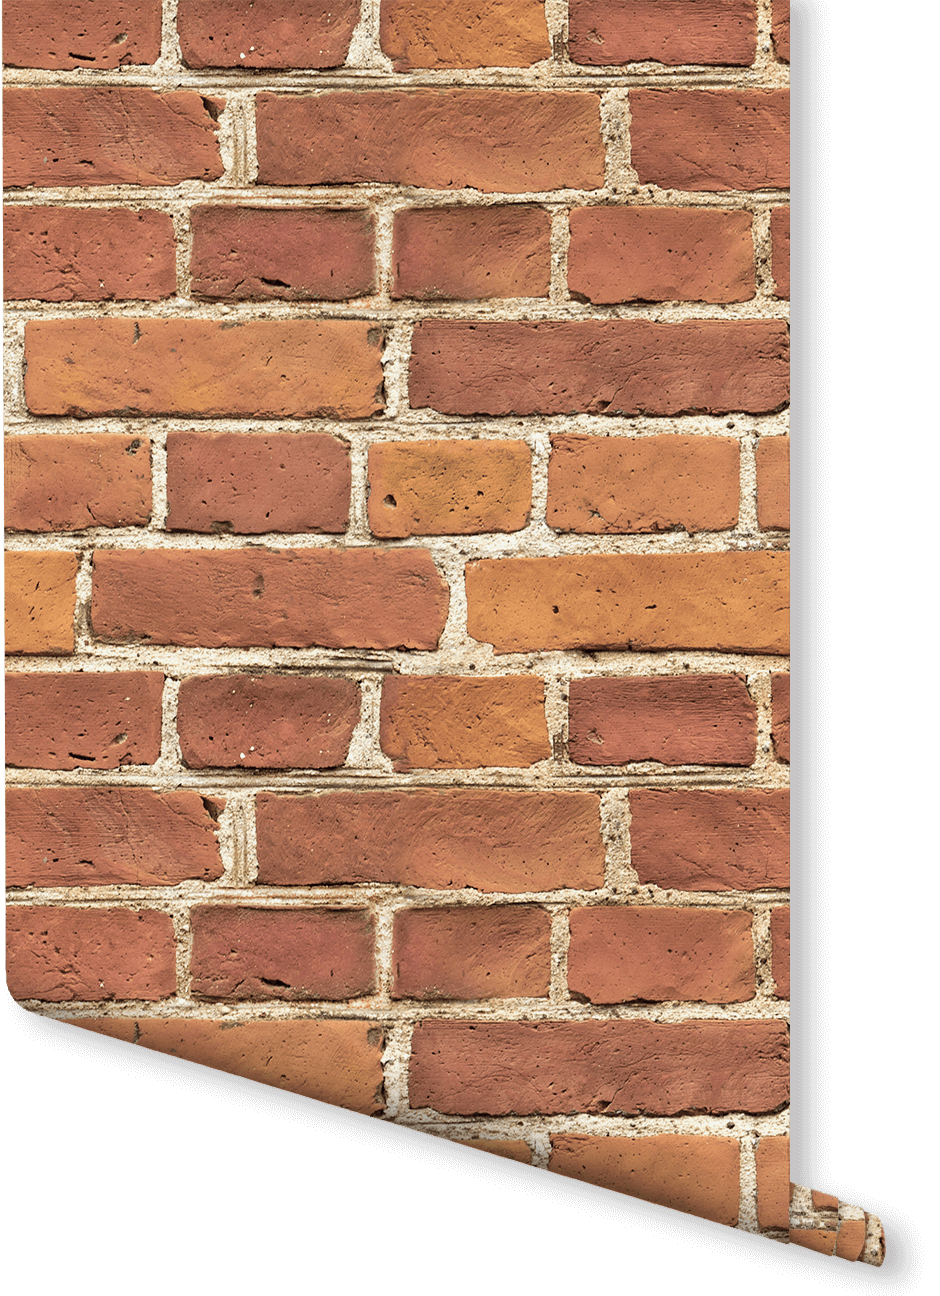 Old London Brick Wallpaper Brick wallpaper, London brick